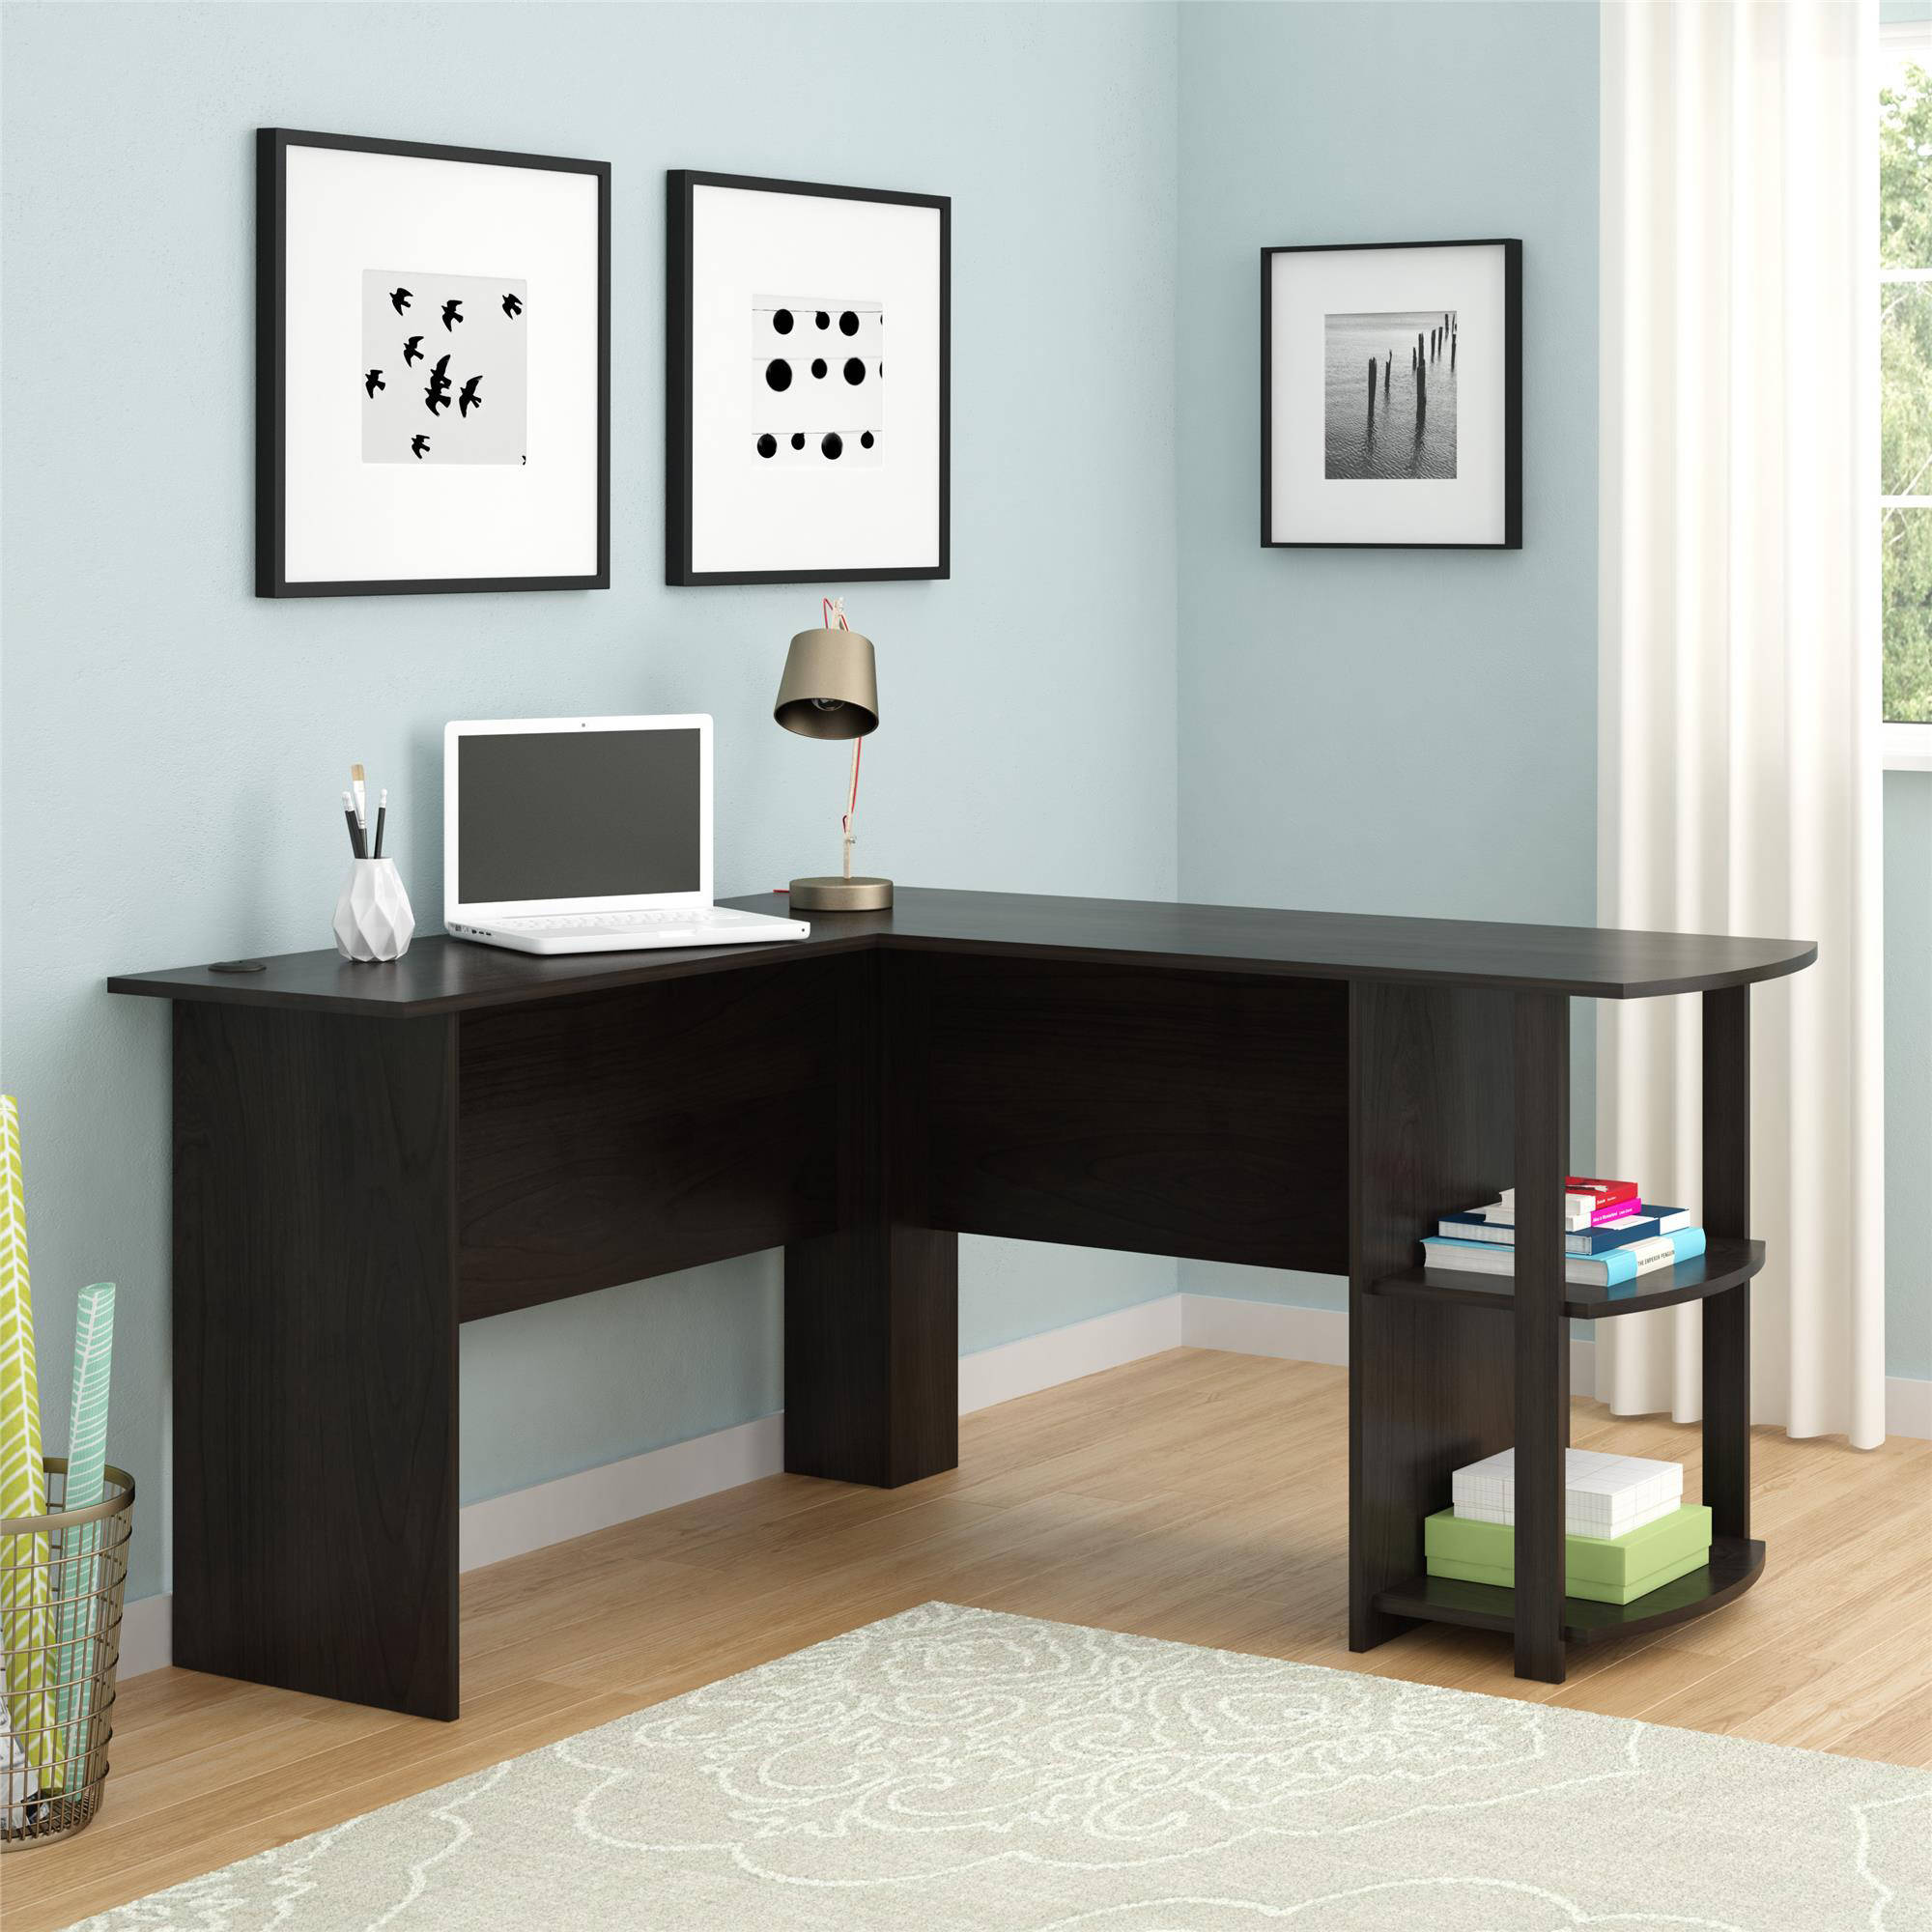 Desks For Teenage Rooms Captivating Teens' Room  Every Day Low Prices  Walmart Inspiration